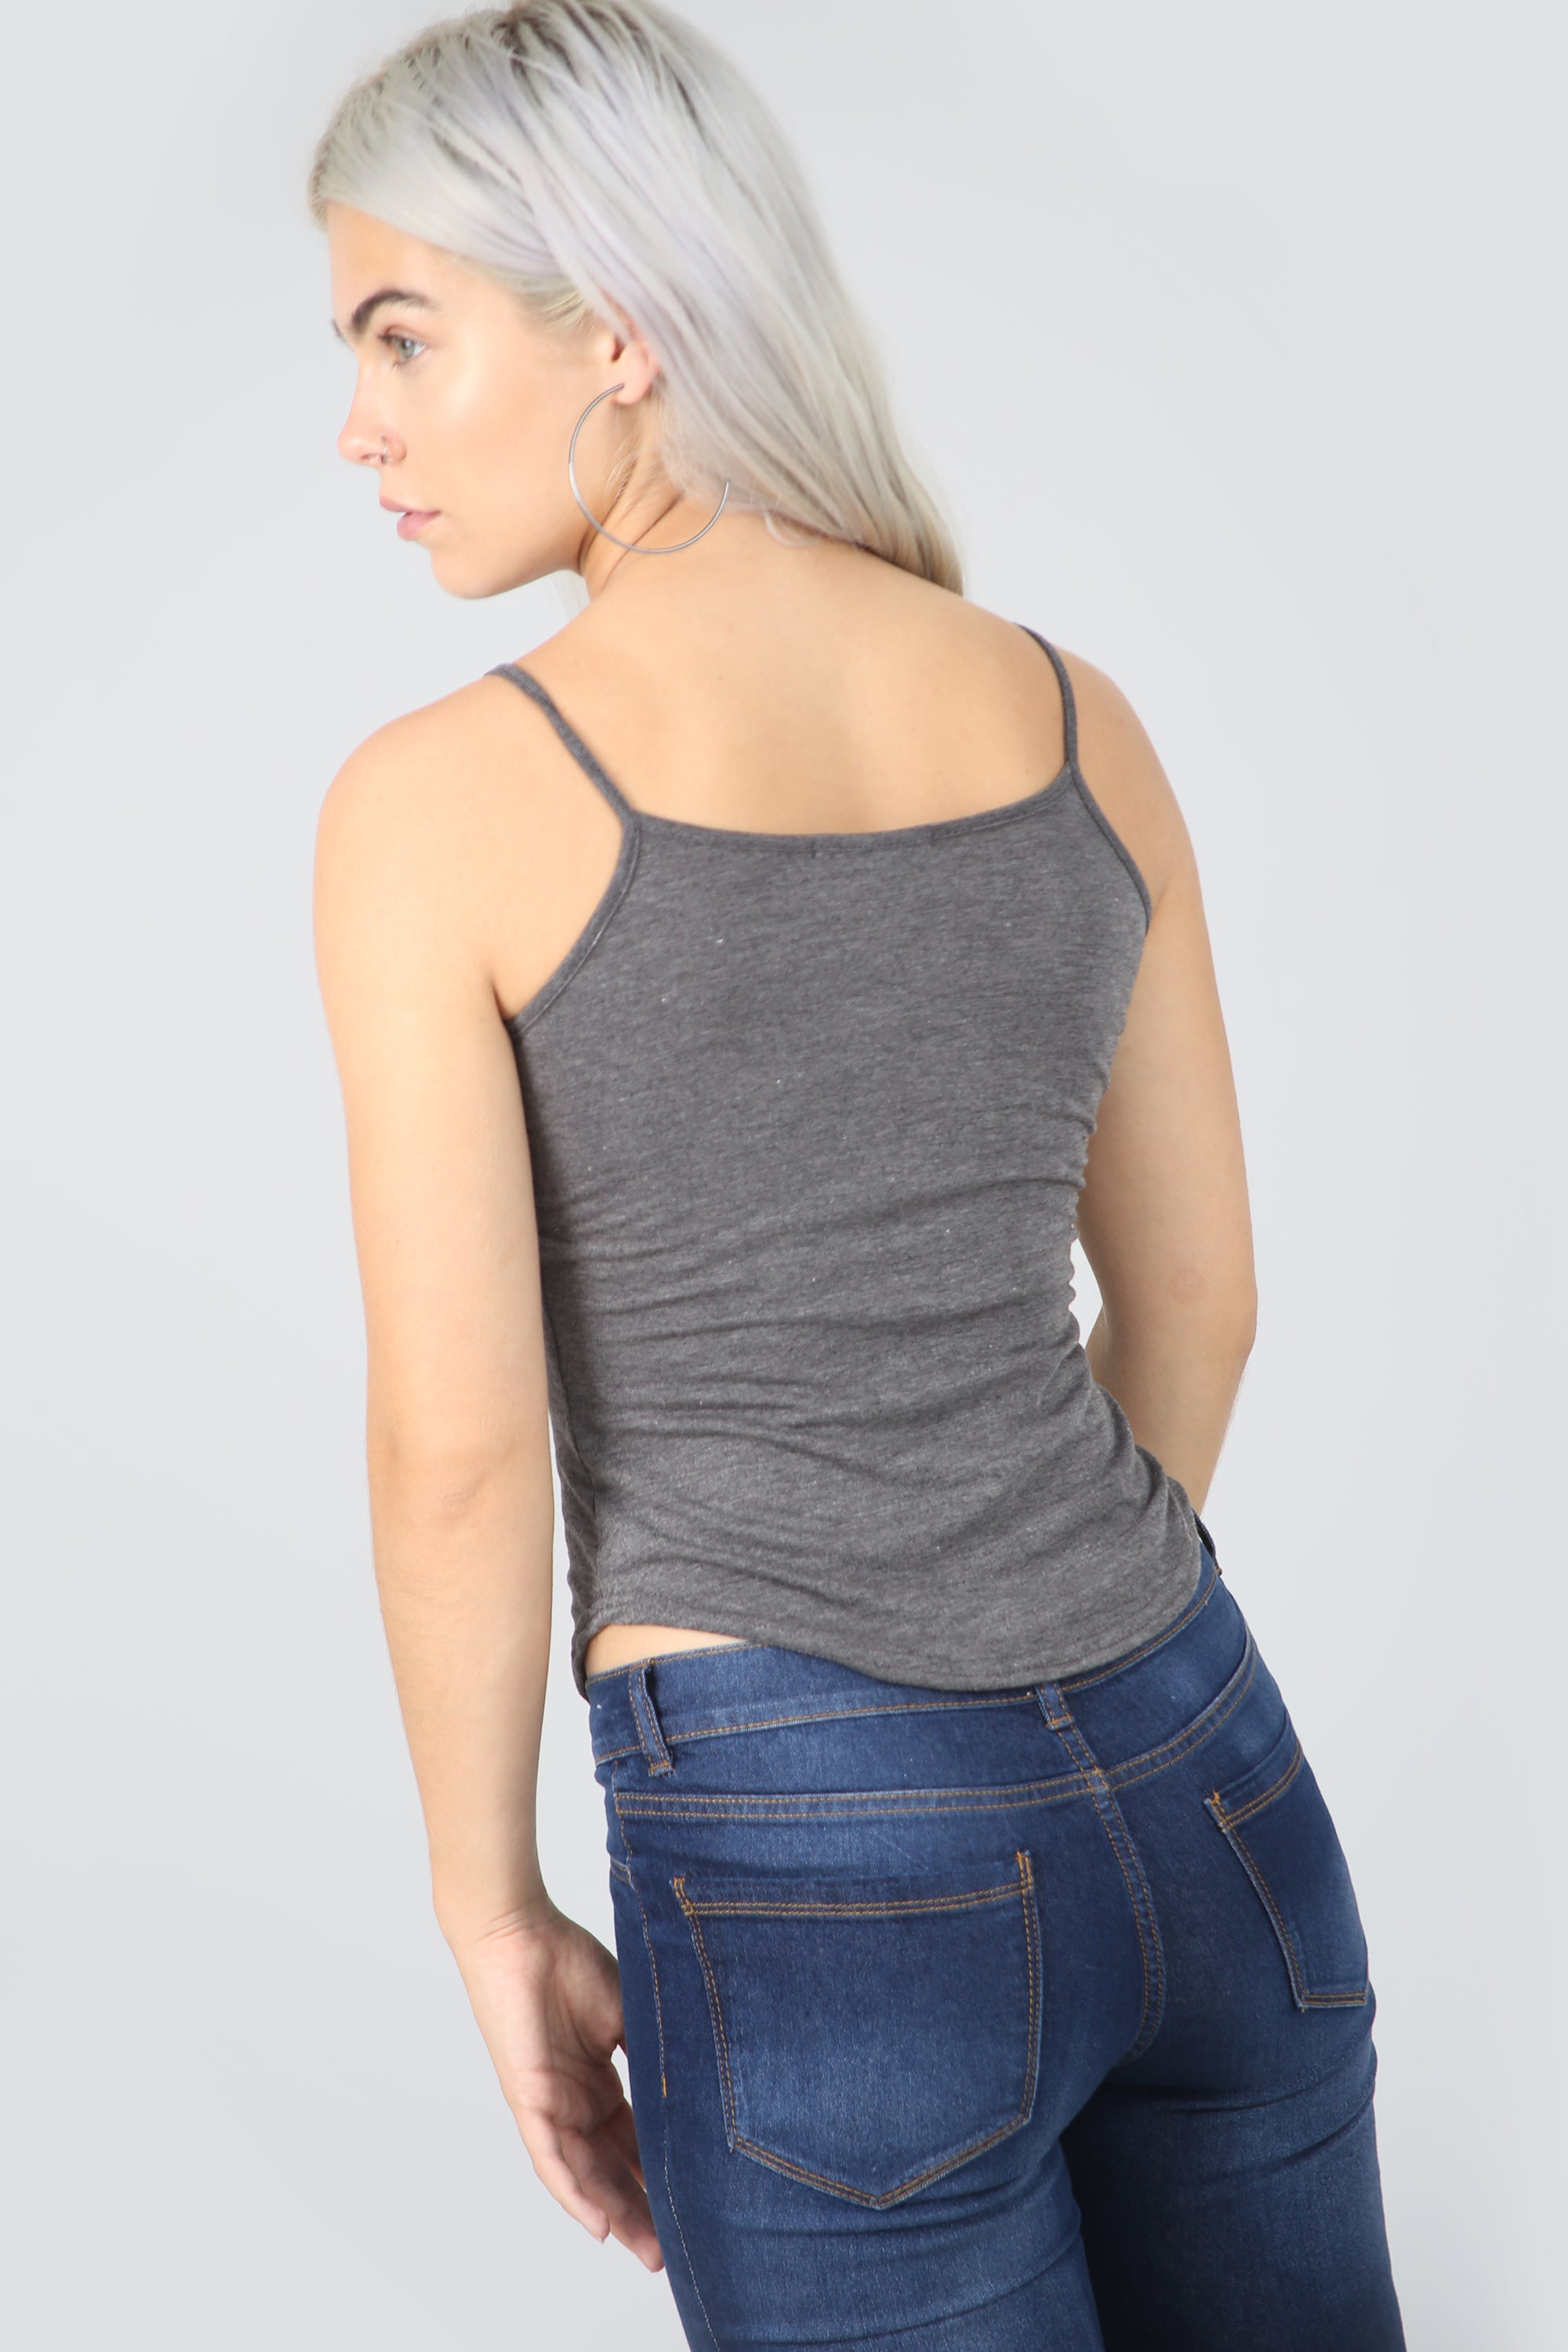 Cami Curved Hem Grey Basic Jersey Vest Top - bejealous-com